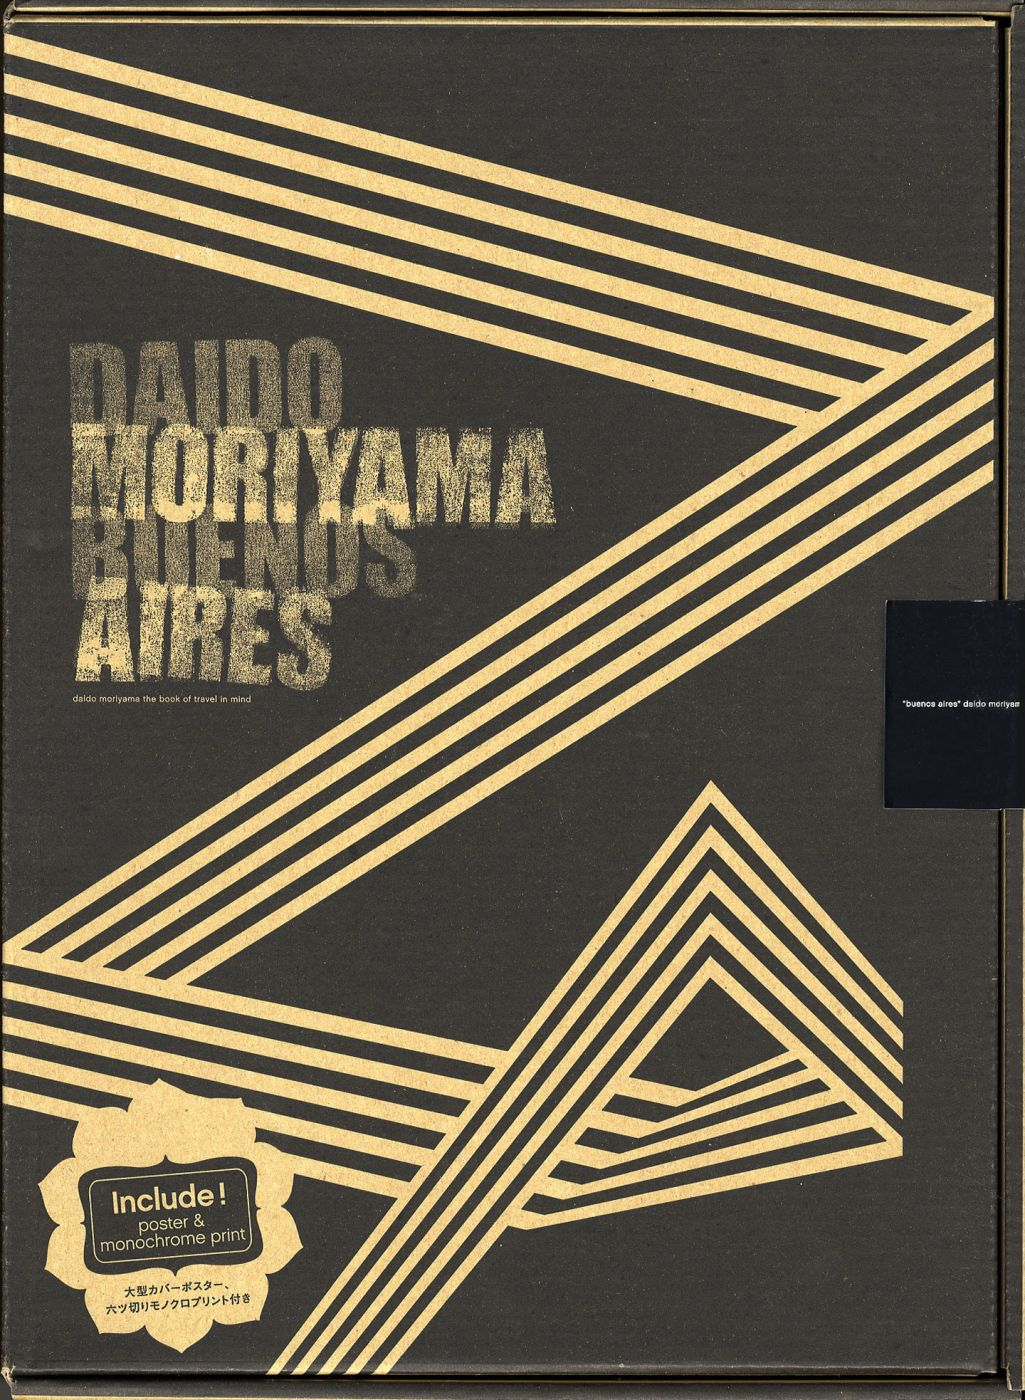 Daido Moriyama: Buenos Aires, Limited Edition (with Gelatin Silver Print)